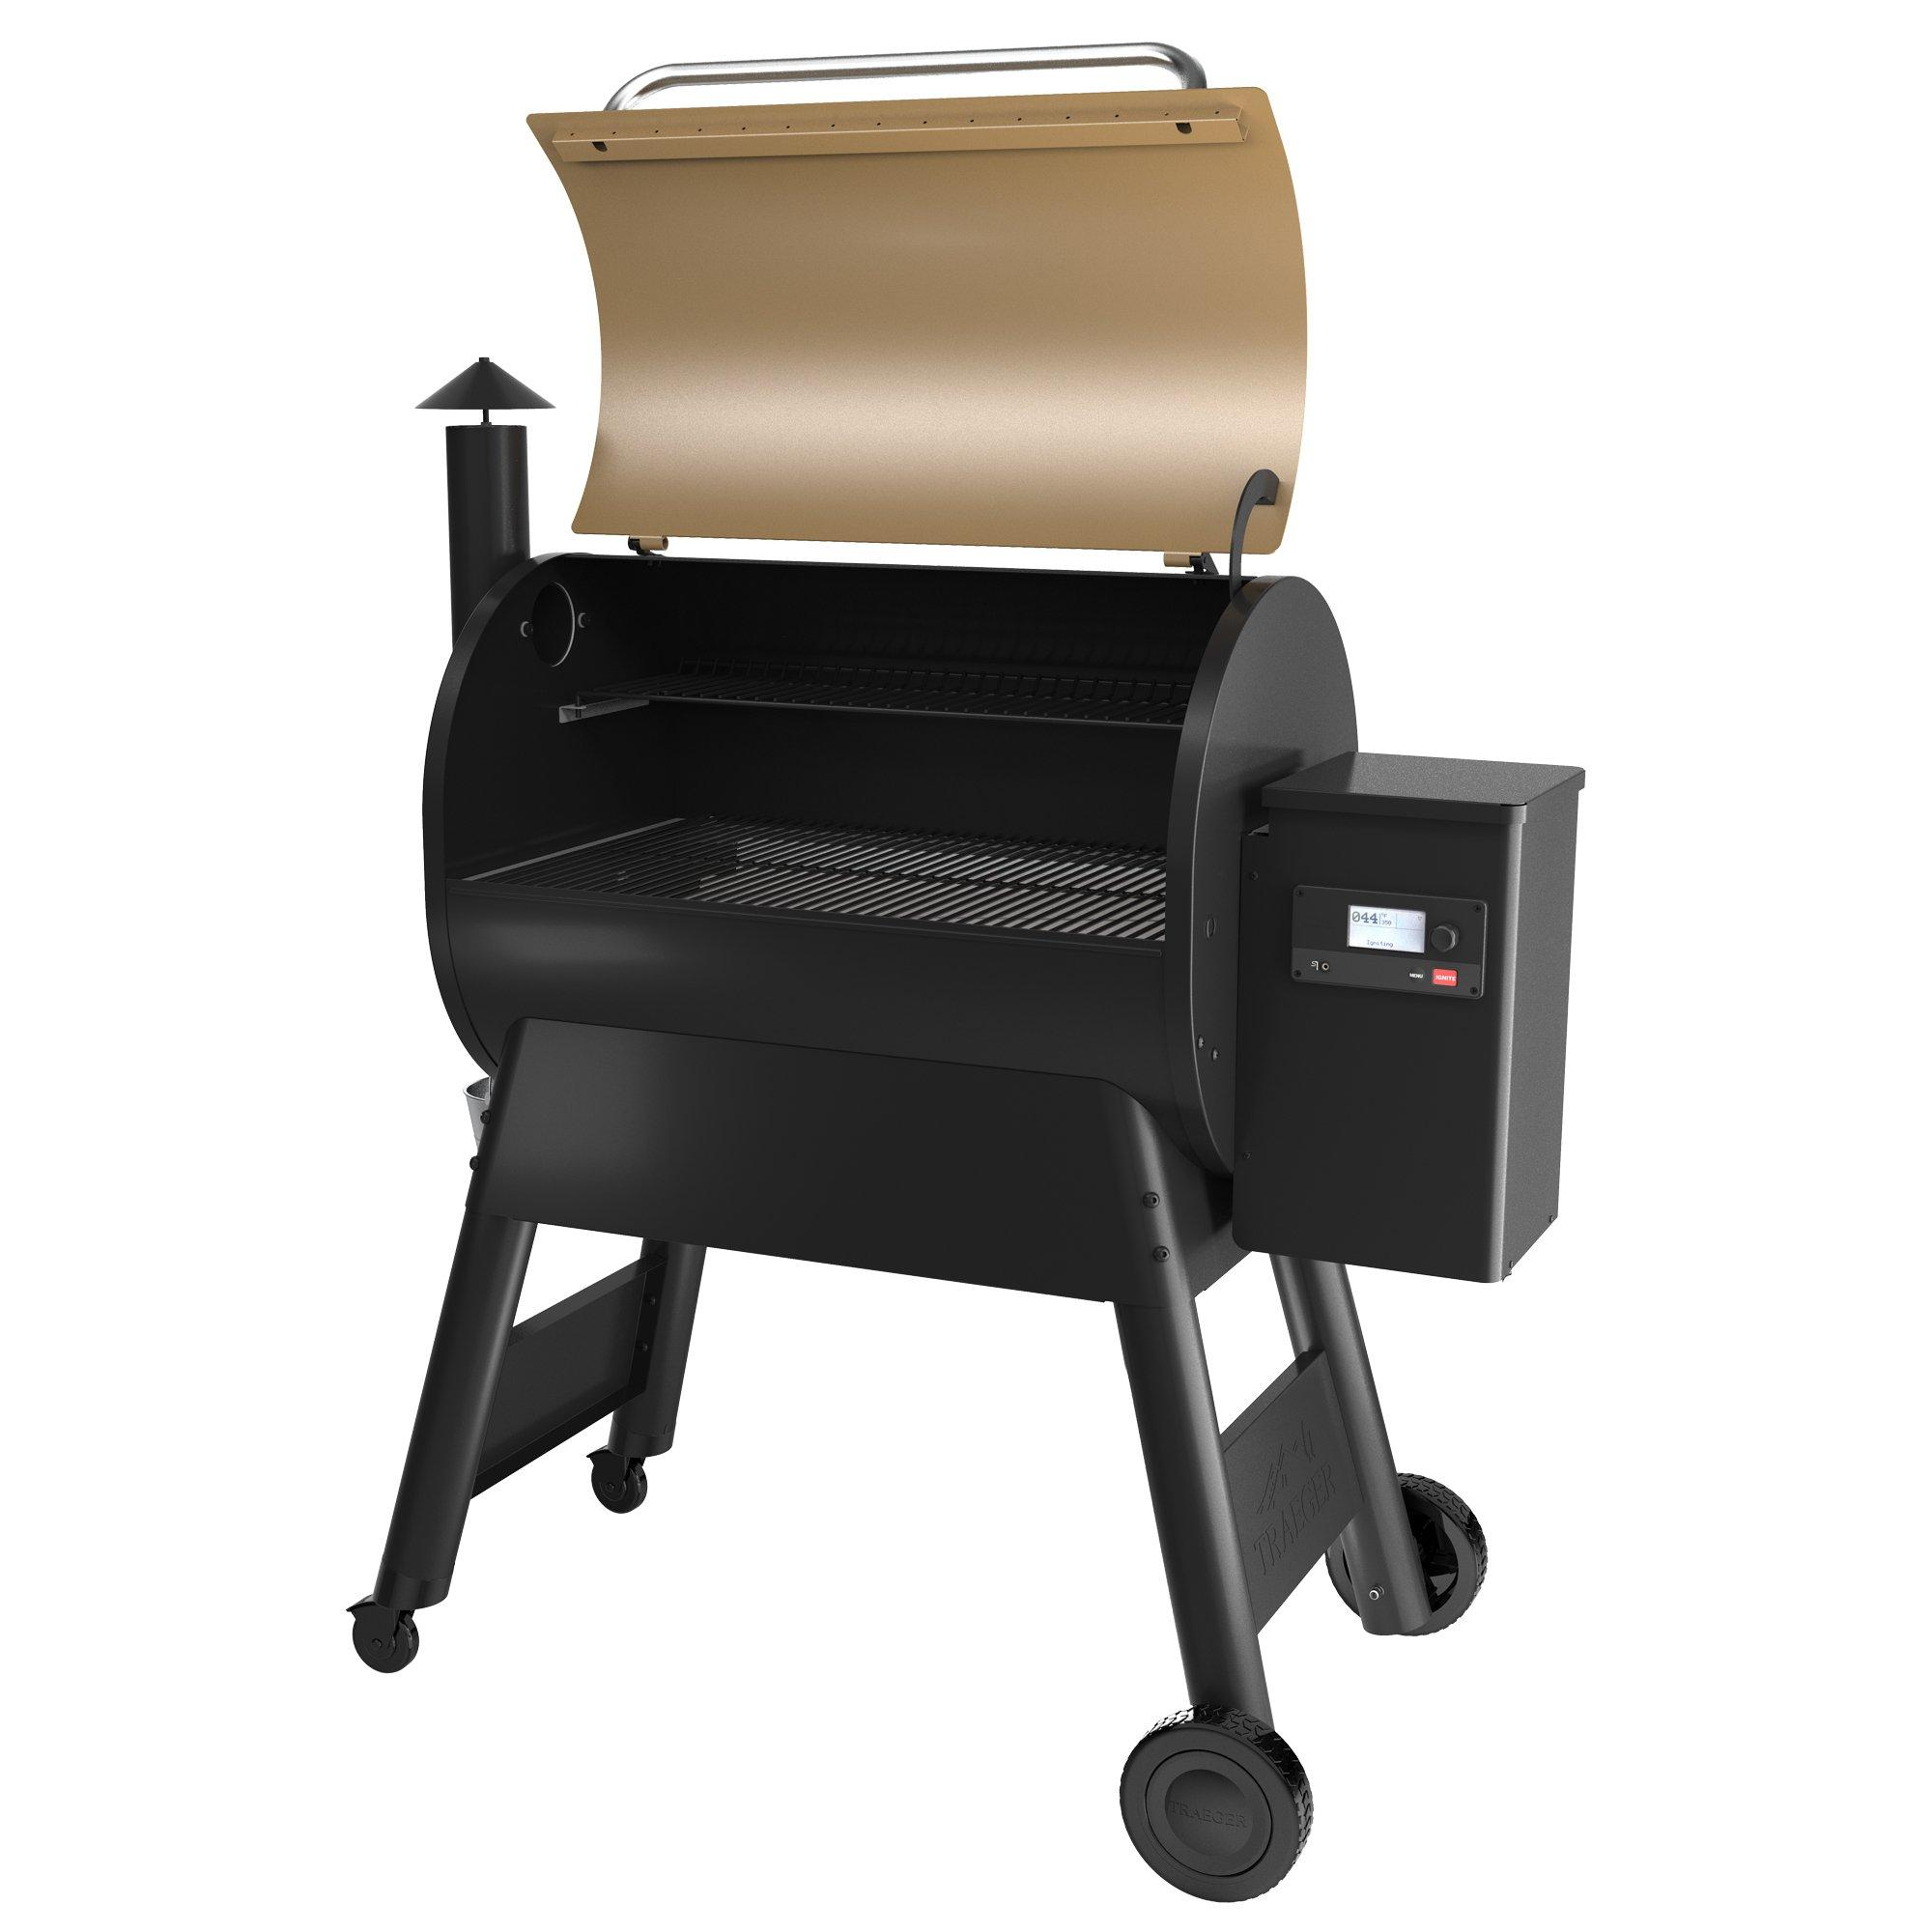 traeger-pro-series-780-pellet-grill-bronze-lid-open-right